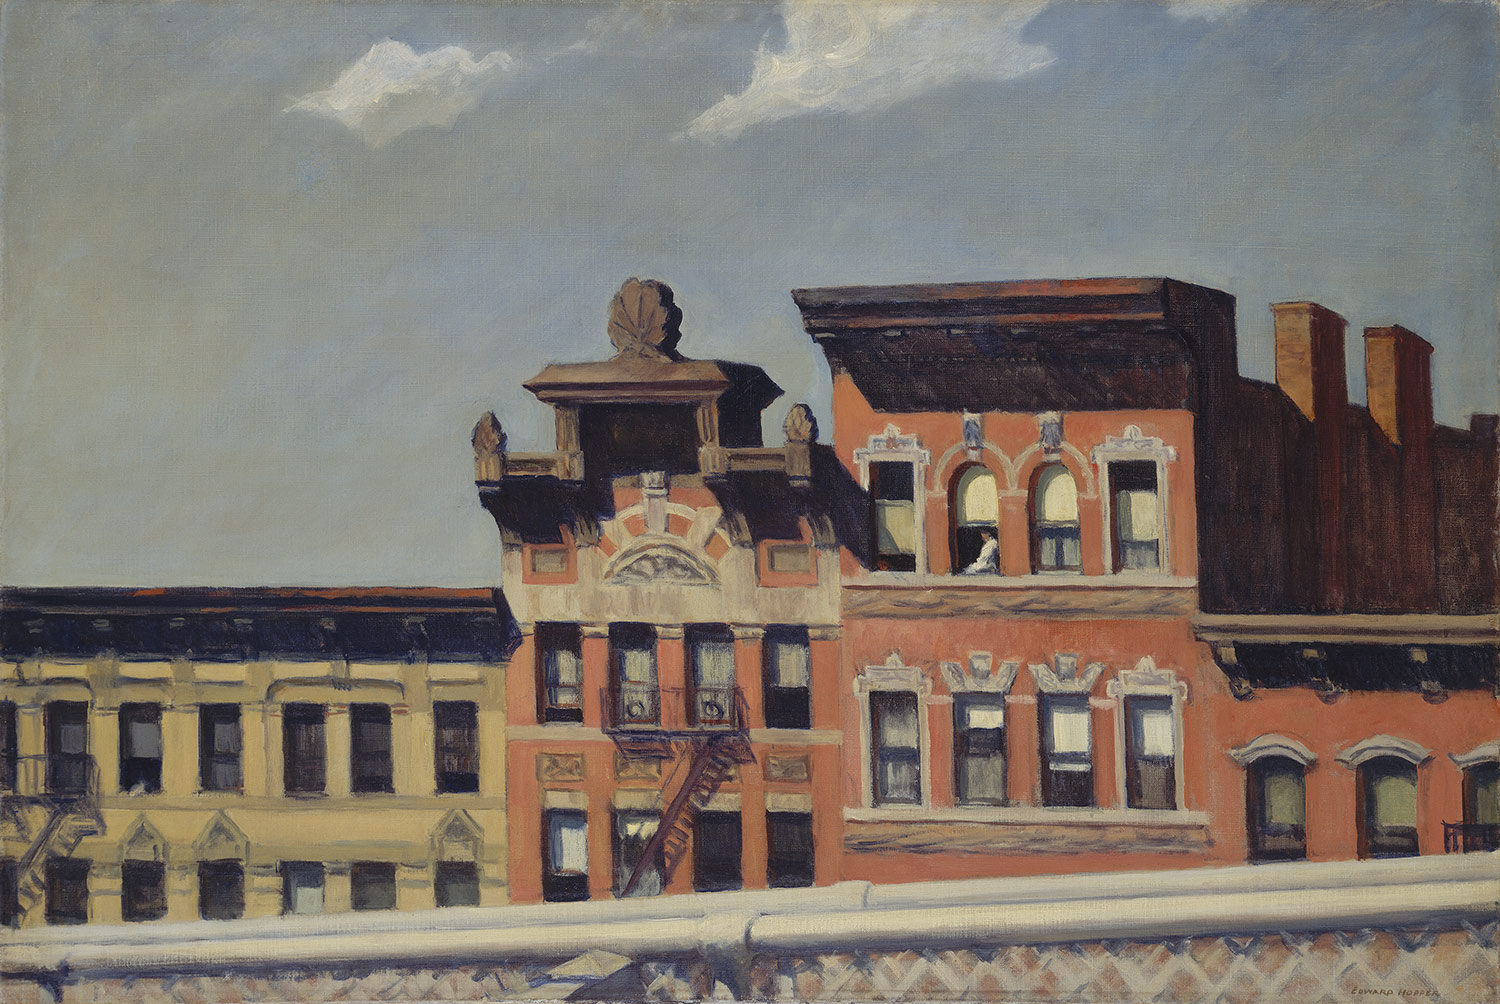 From Williamsburg Bridge, Edward Hopper, 1928